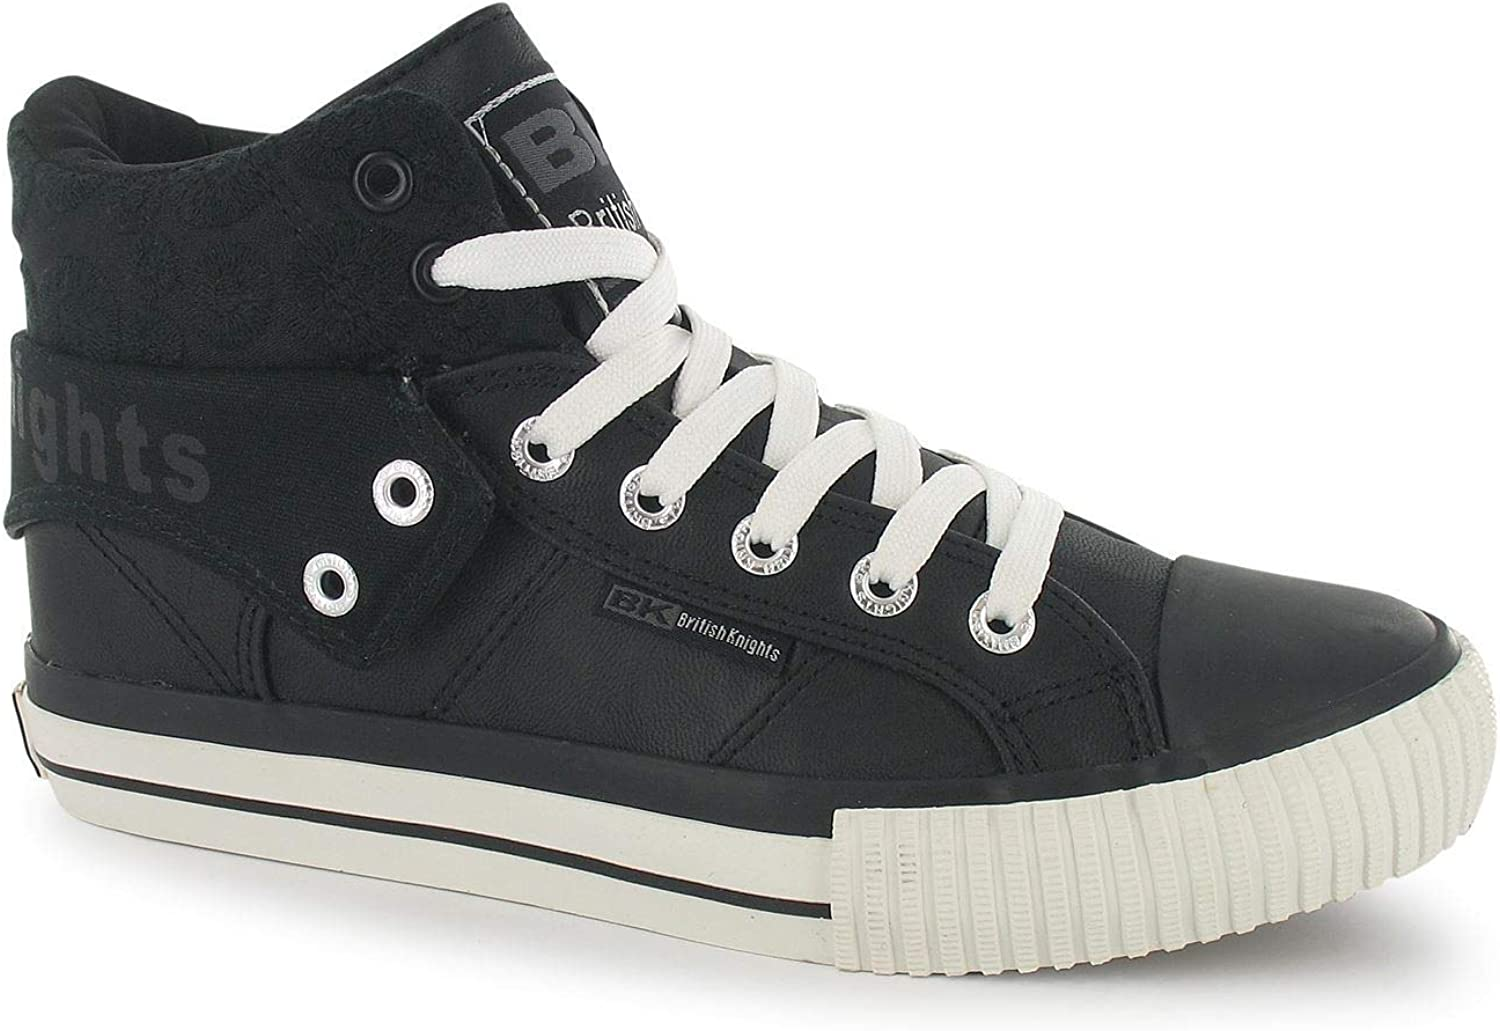 British Knights Roco PU Hi Top Trainers Womens Athleisure shoes Sneakers